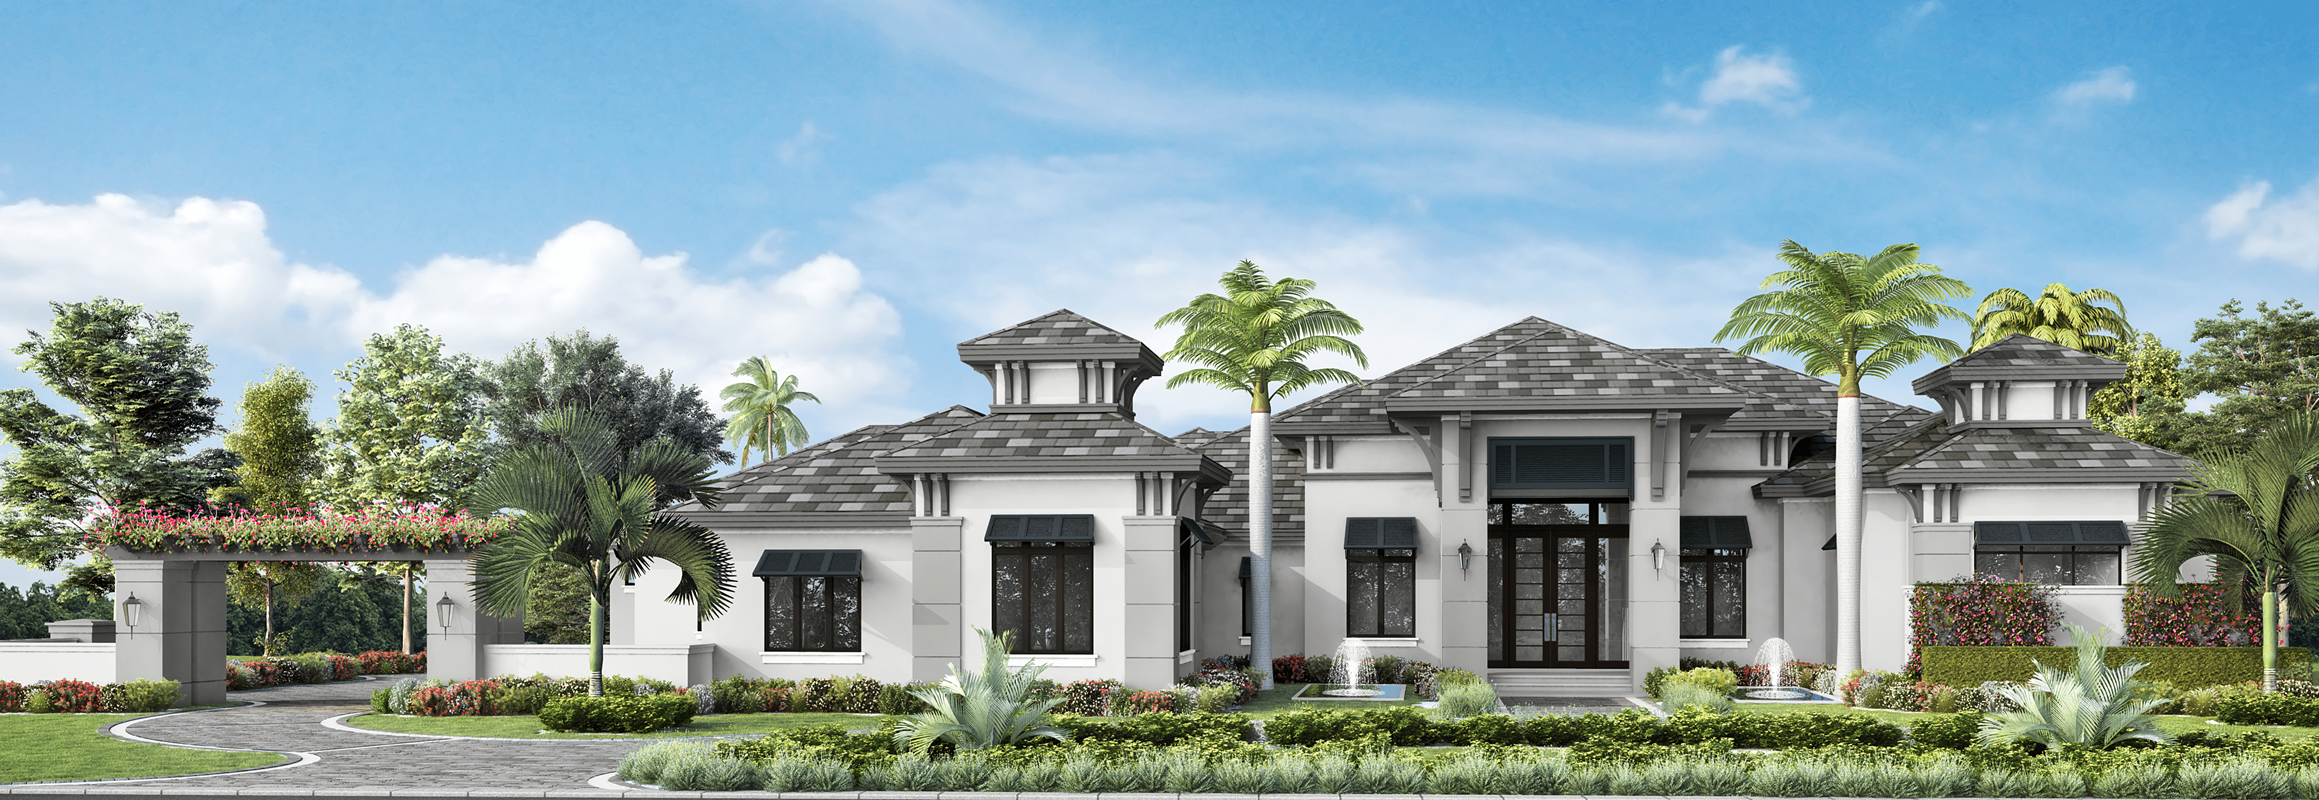 McGarvey Custom Homes Sells Brentwood Model